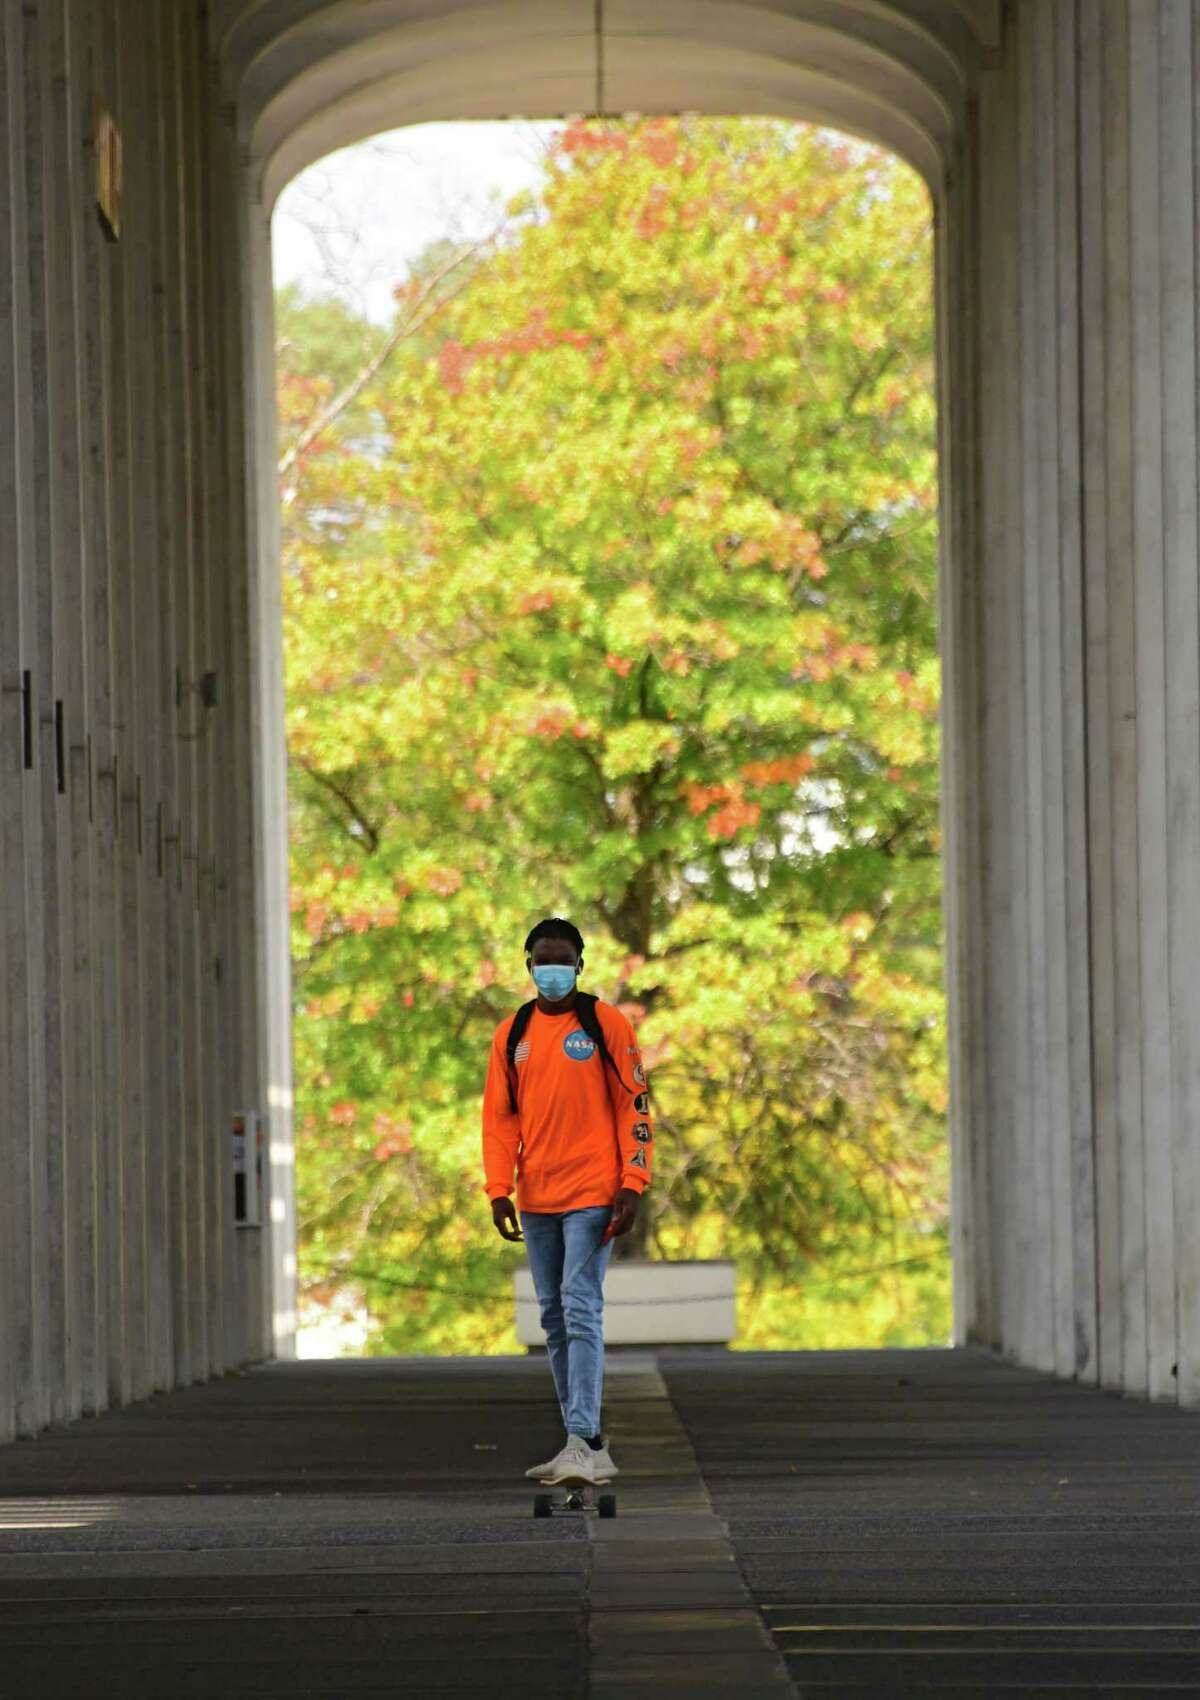 A student waering a mask is seen skateboarding near the campus center of University at Albany on Friday, Sept. 25, 2020 in Albany, N.Y. (Lori Van Buren/Times Union)